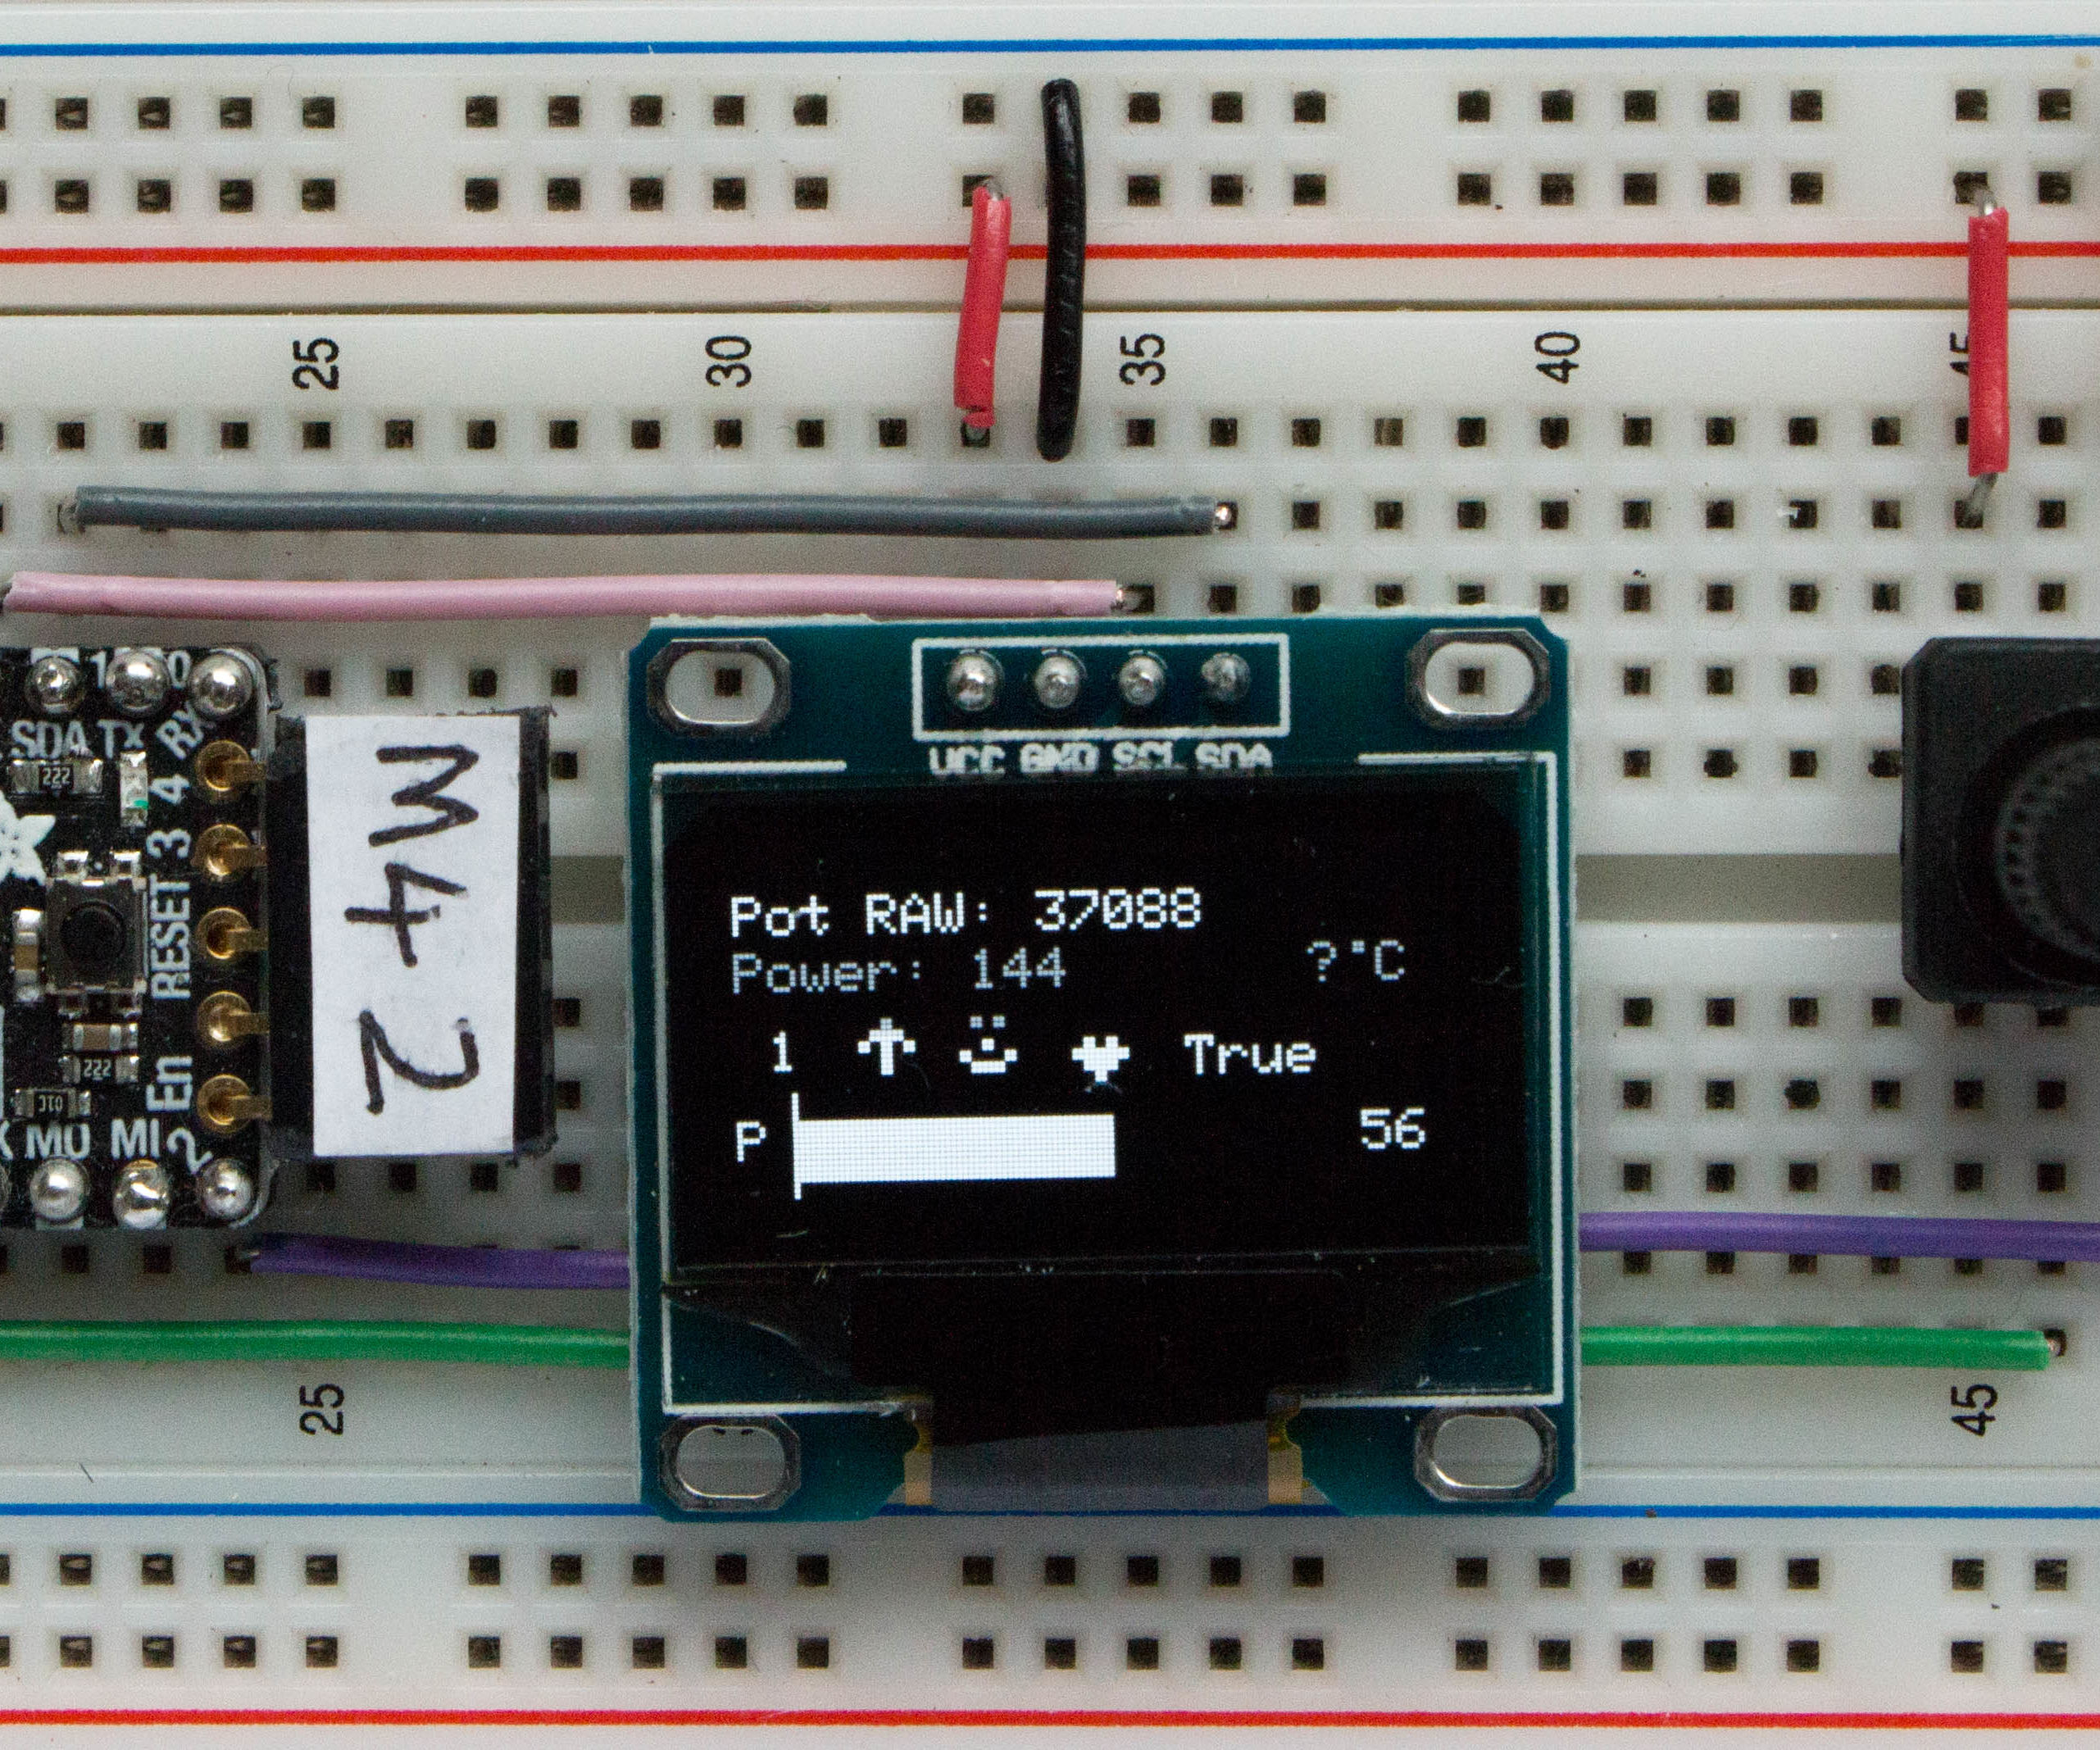 Graphics on a SSD1306 I2C OLED 128x64 Display With CircuitPython Using an Itsybitsy M4 Express